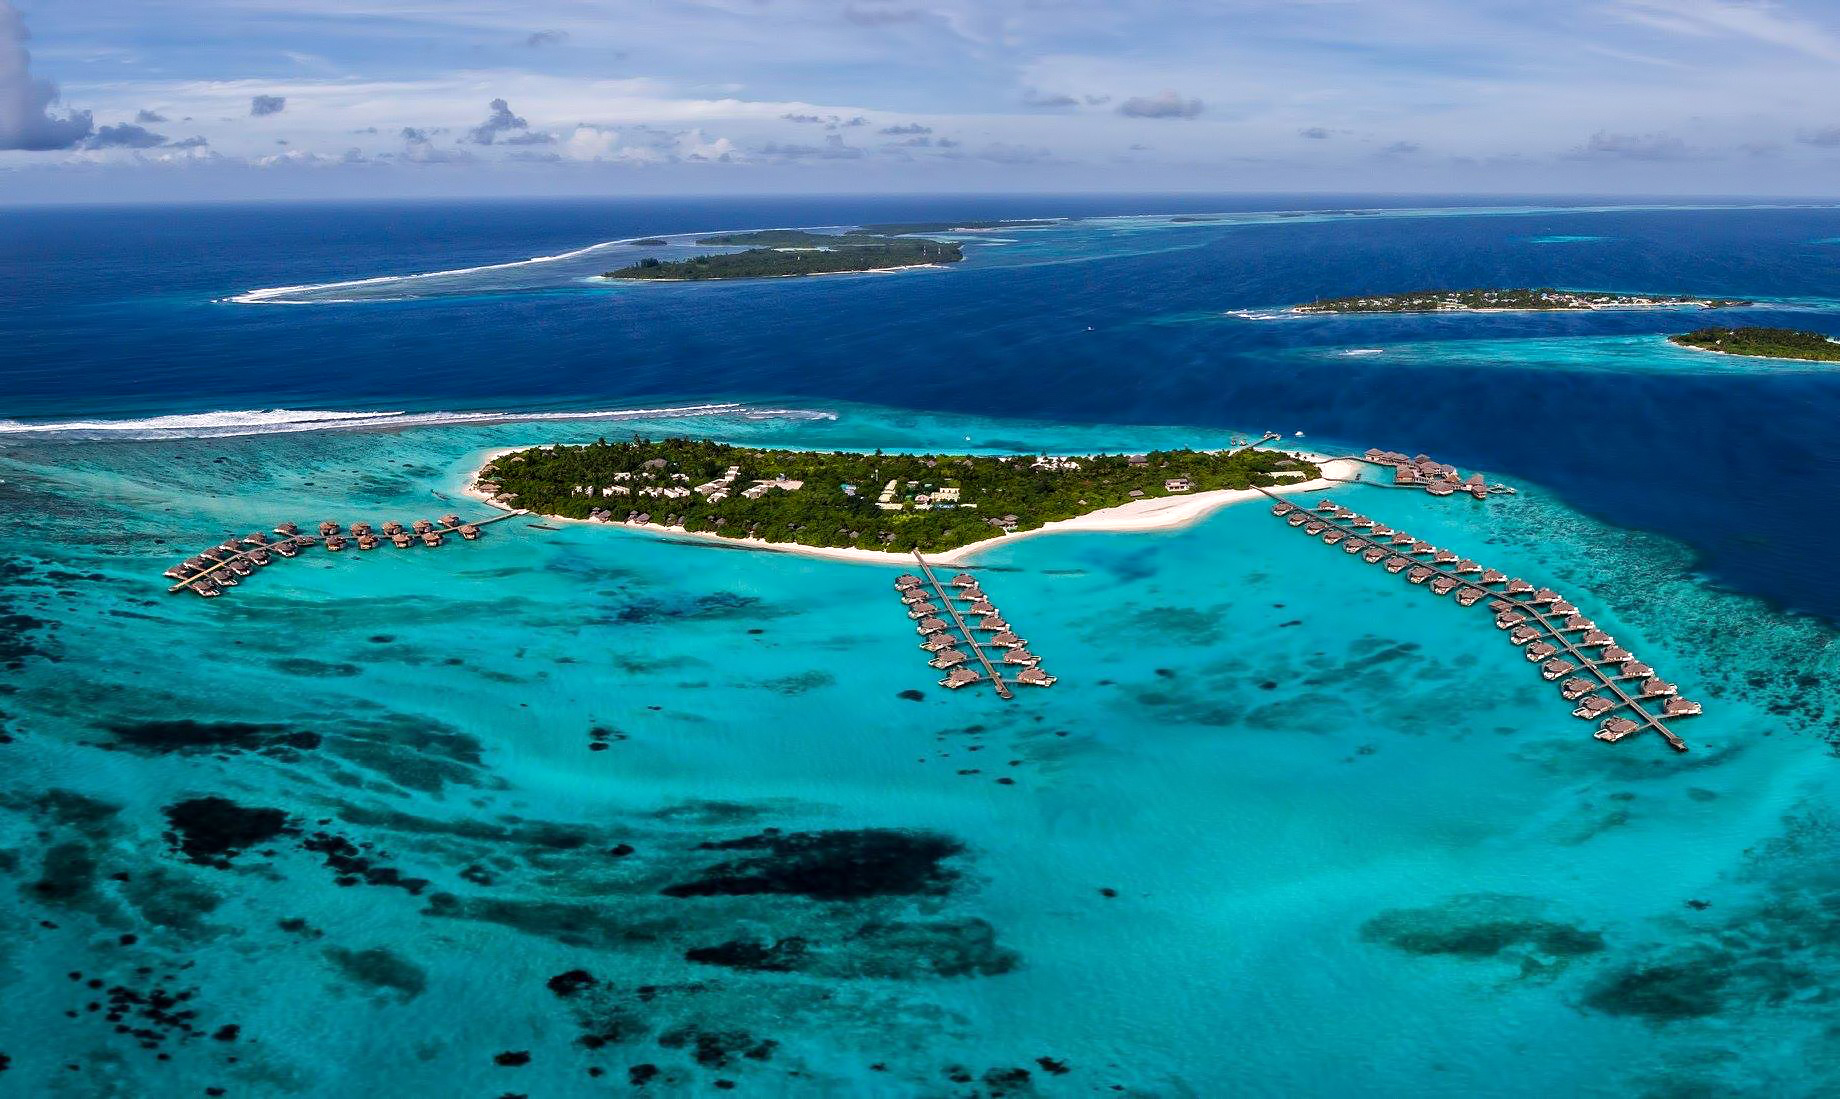 Six Senses Laamu Luxury Resort - Laamu Atoll, Maldives